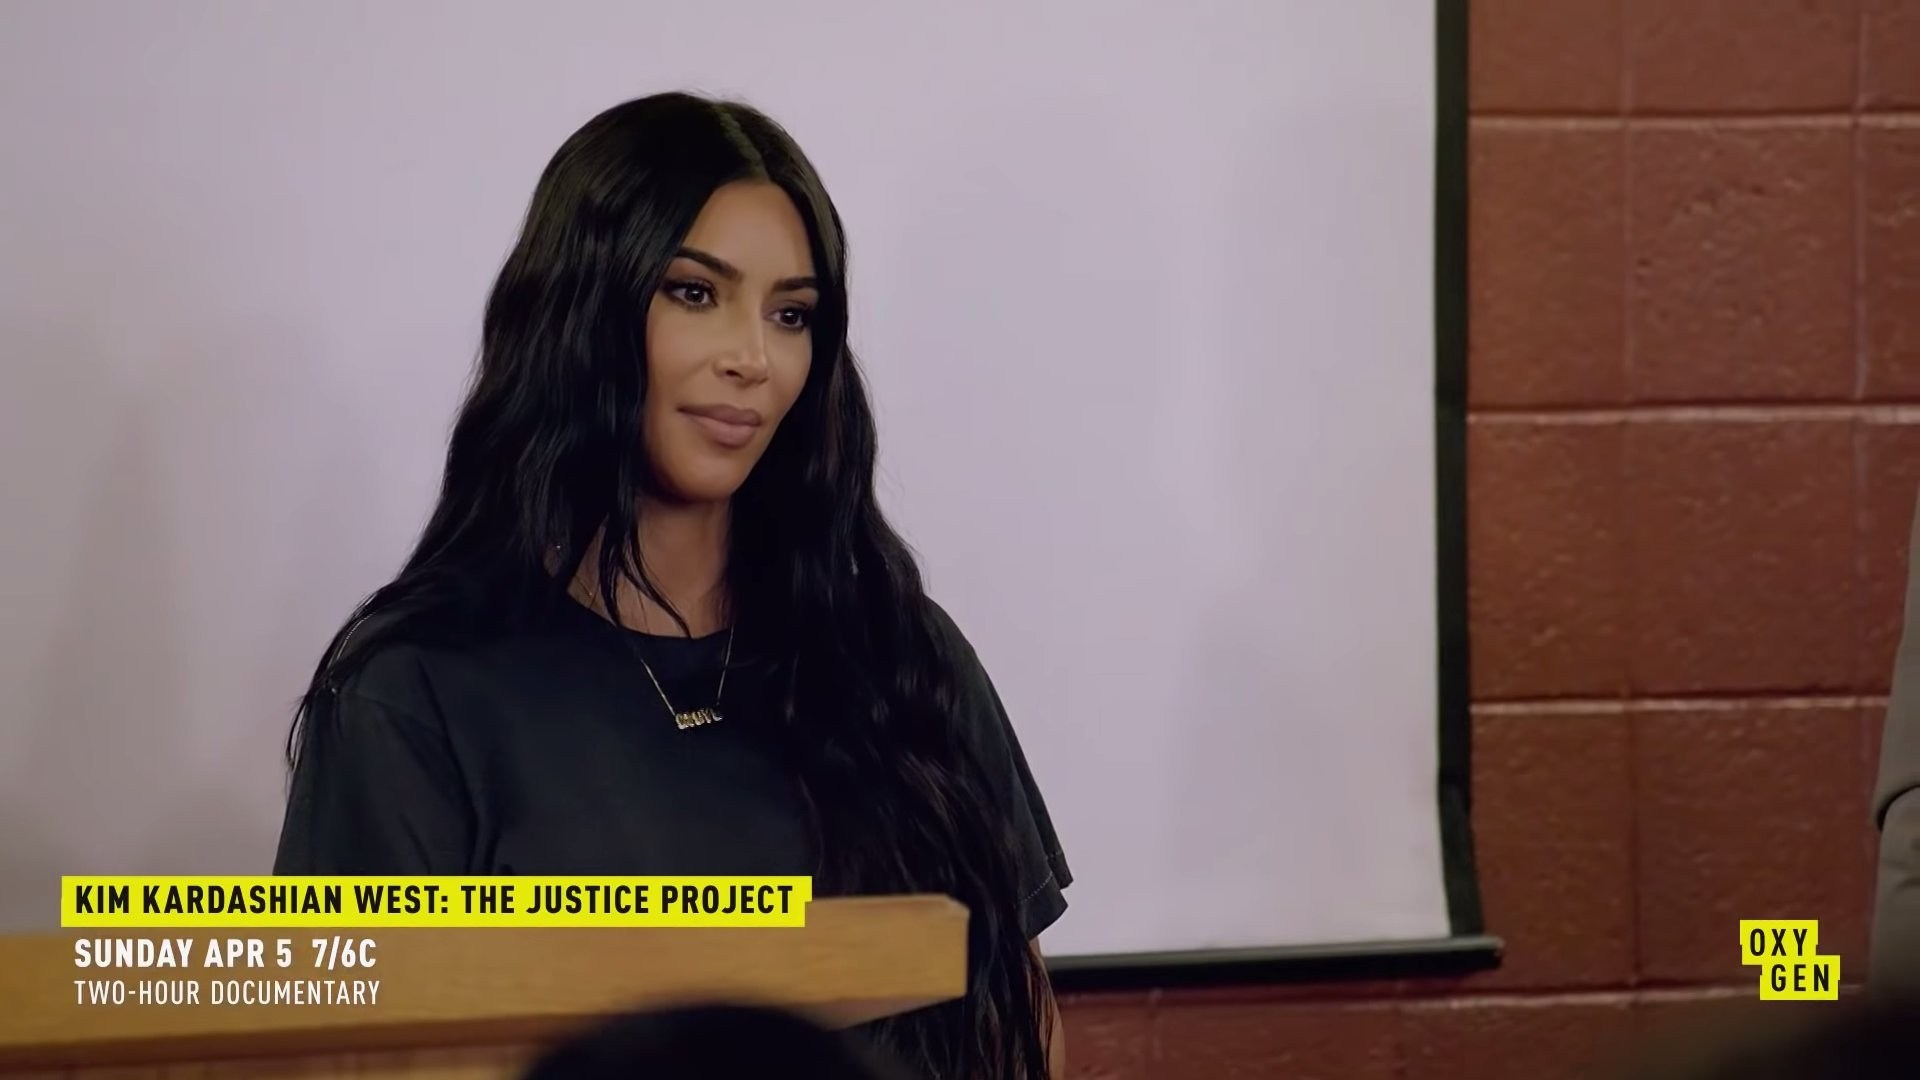 What is mandatory sentencing, as Kim Kardashian speaks out against it in The Justice Project documentary?